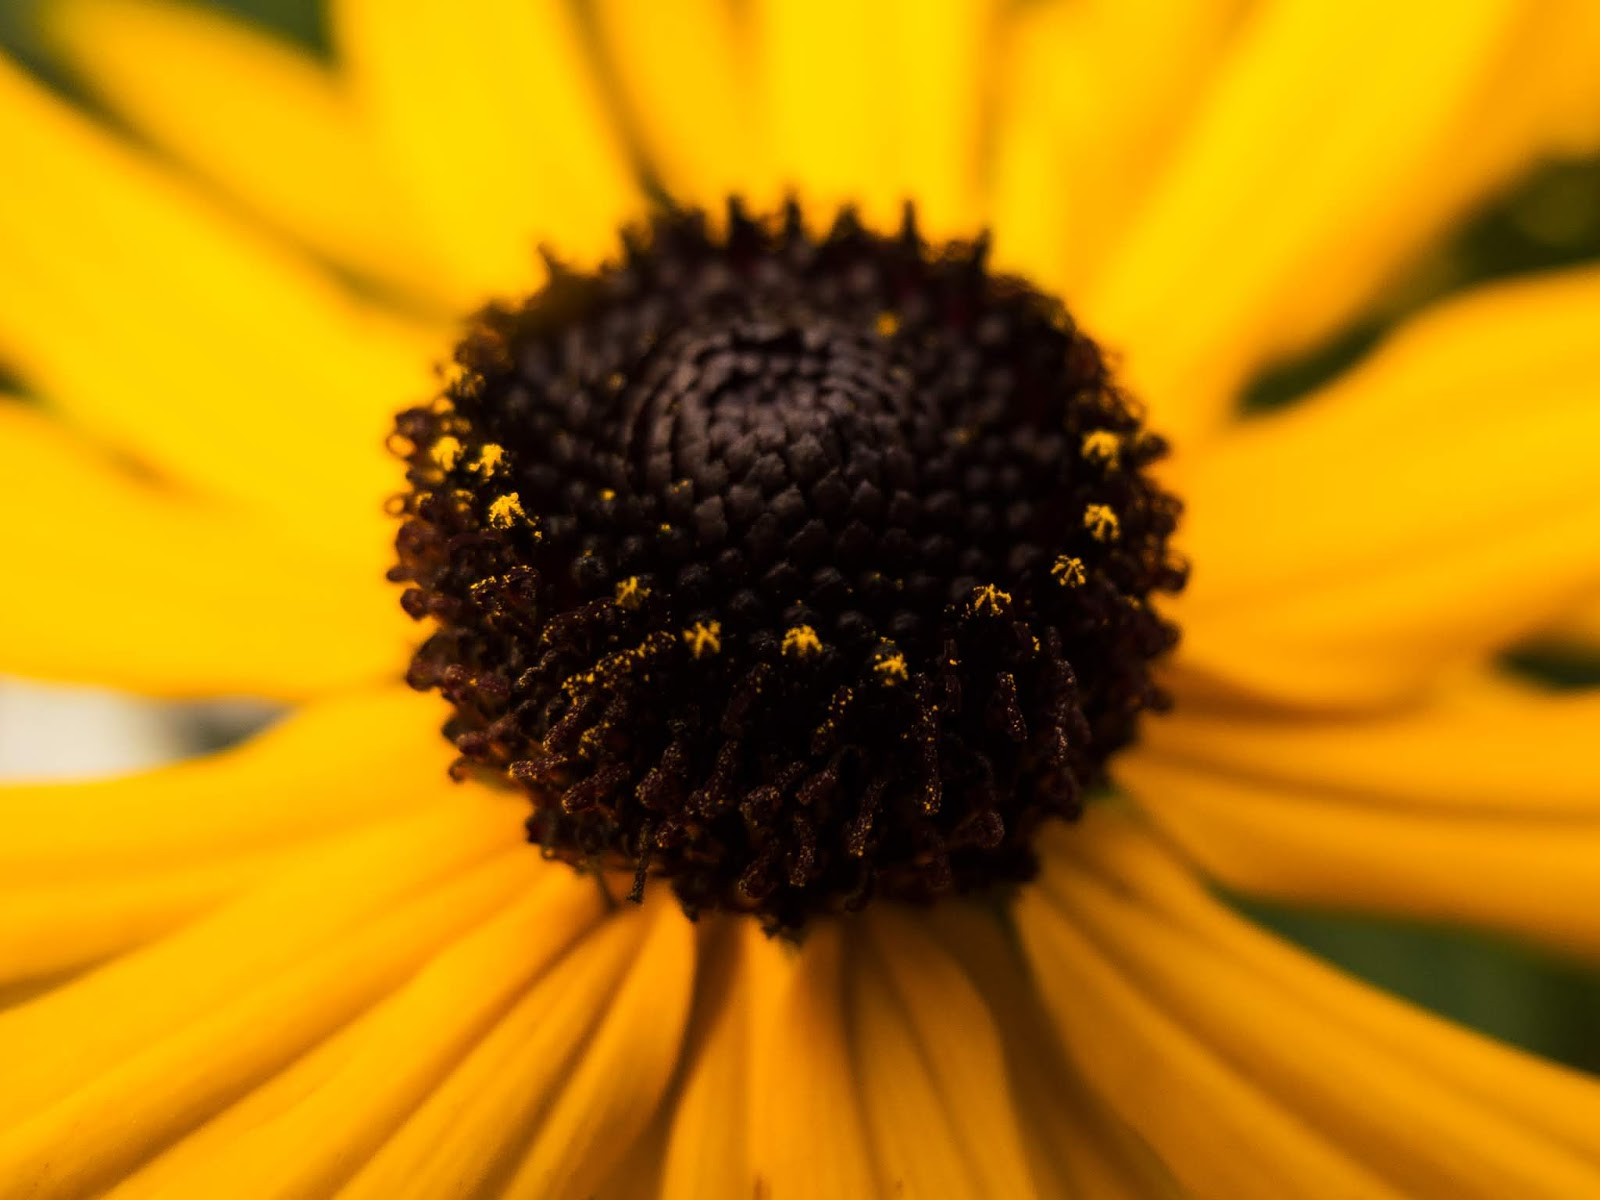 Macro of the centre of a Black Eyed Susan flower.